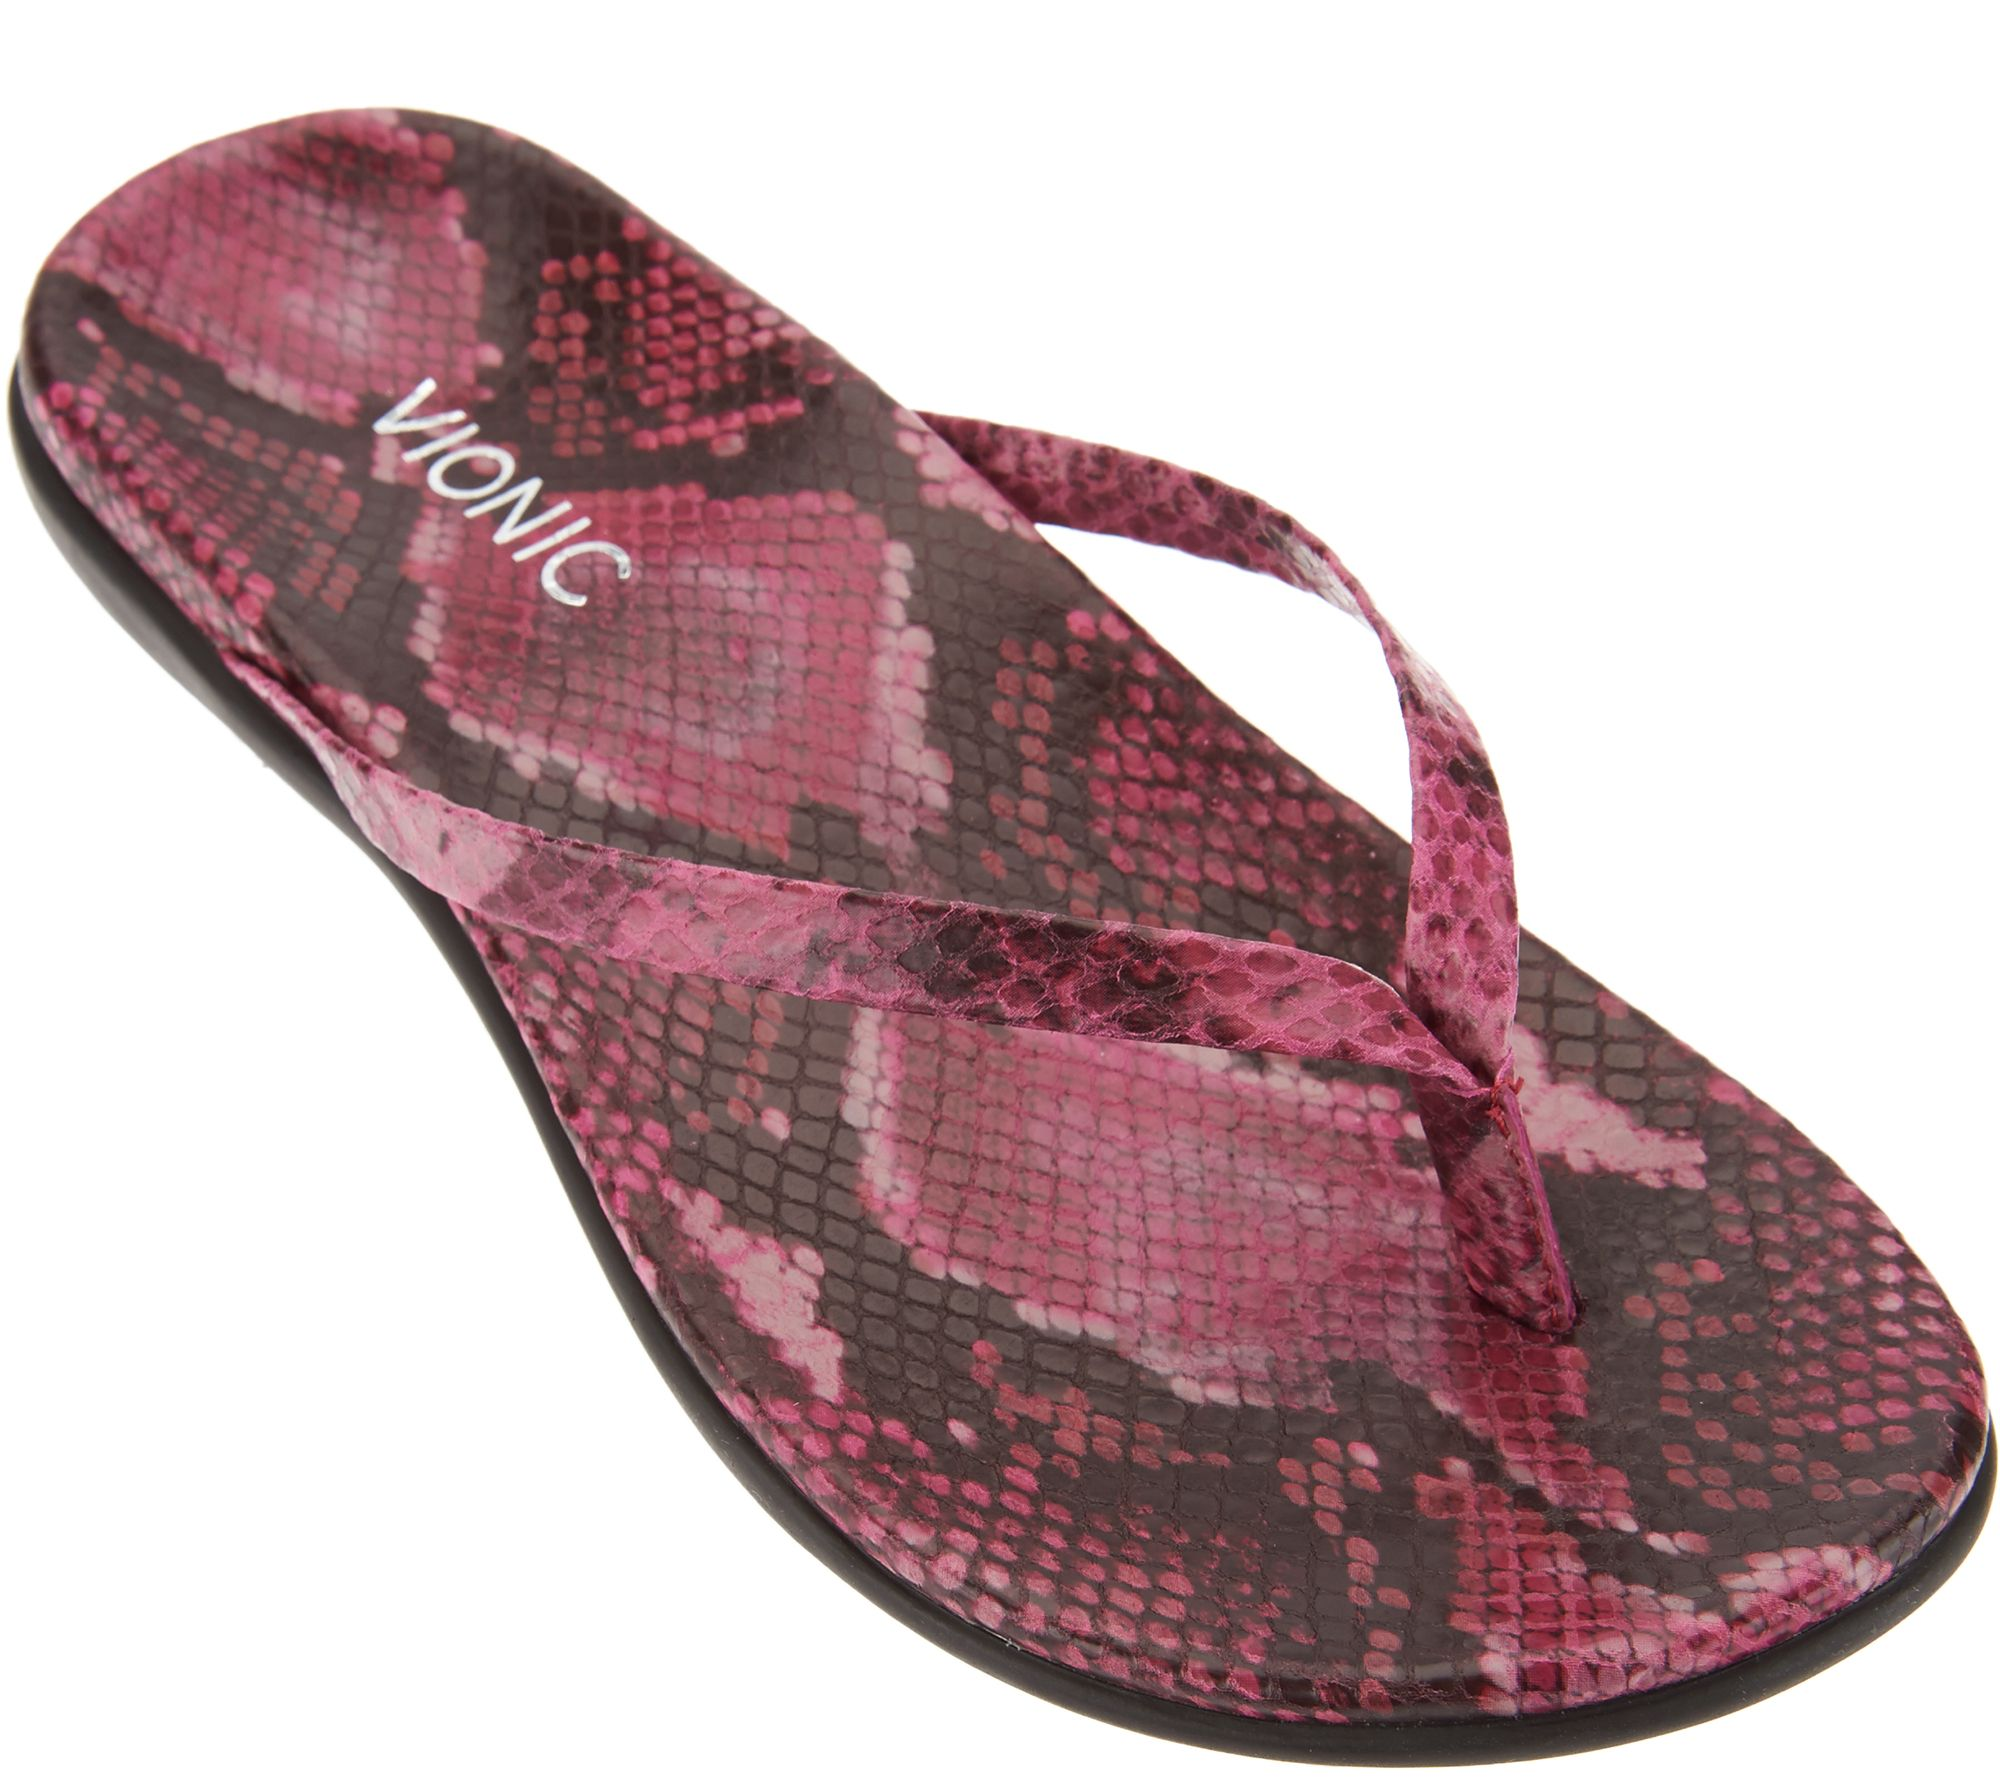 0d6dce9a3d70f Vionic Orthotic Leather or Suede Thong Sandals - Corfu - Page 1 — QVC.com